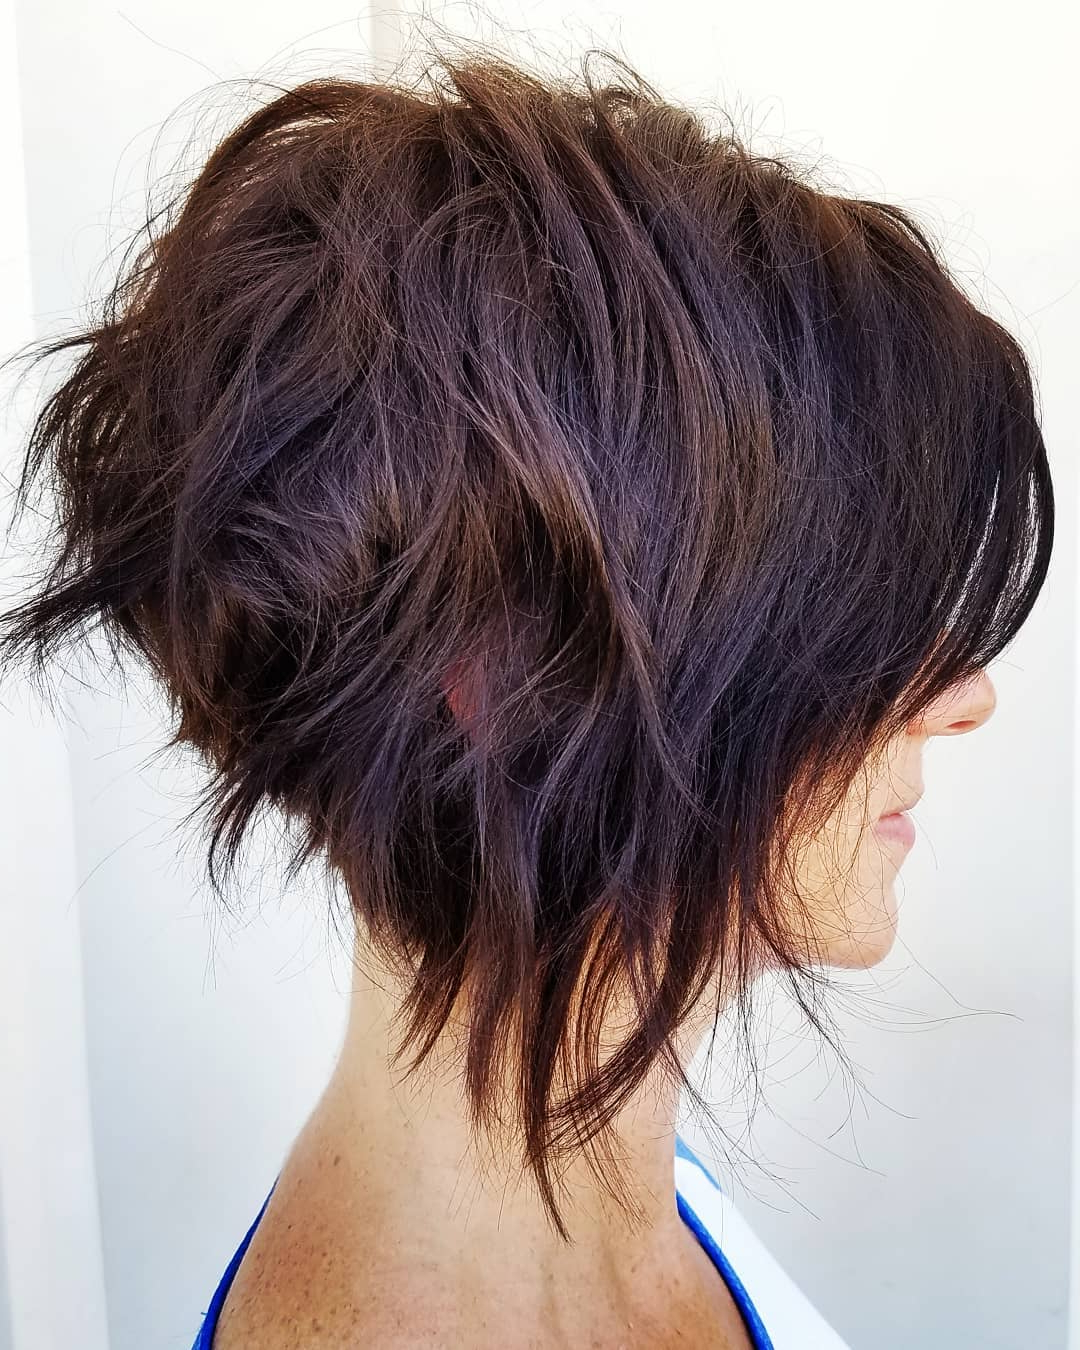 10 Trendy Messy Bob Hairstyles And Haircuts, 2019 Female Short Hair With Regard To Latest Cute A Line Bob Hairstyles With Volume Towards The Ends (View 16 of 20)